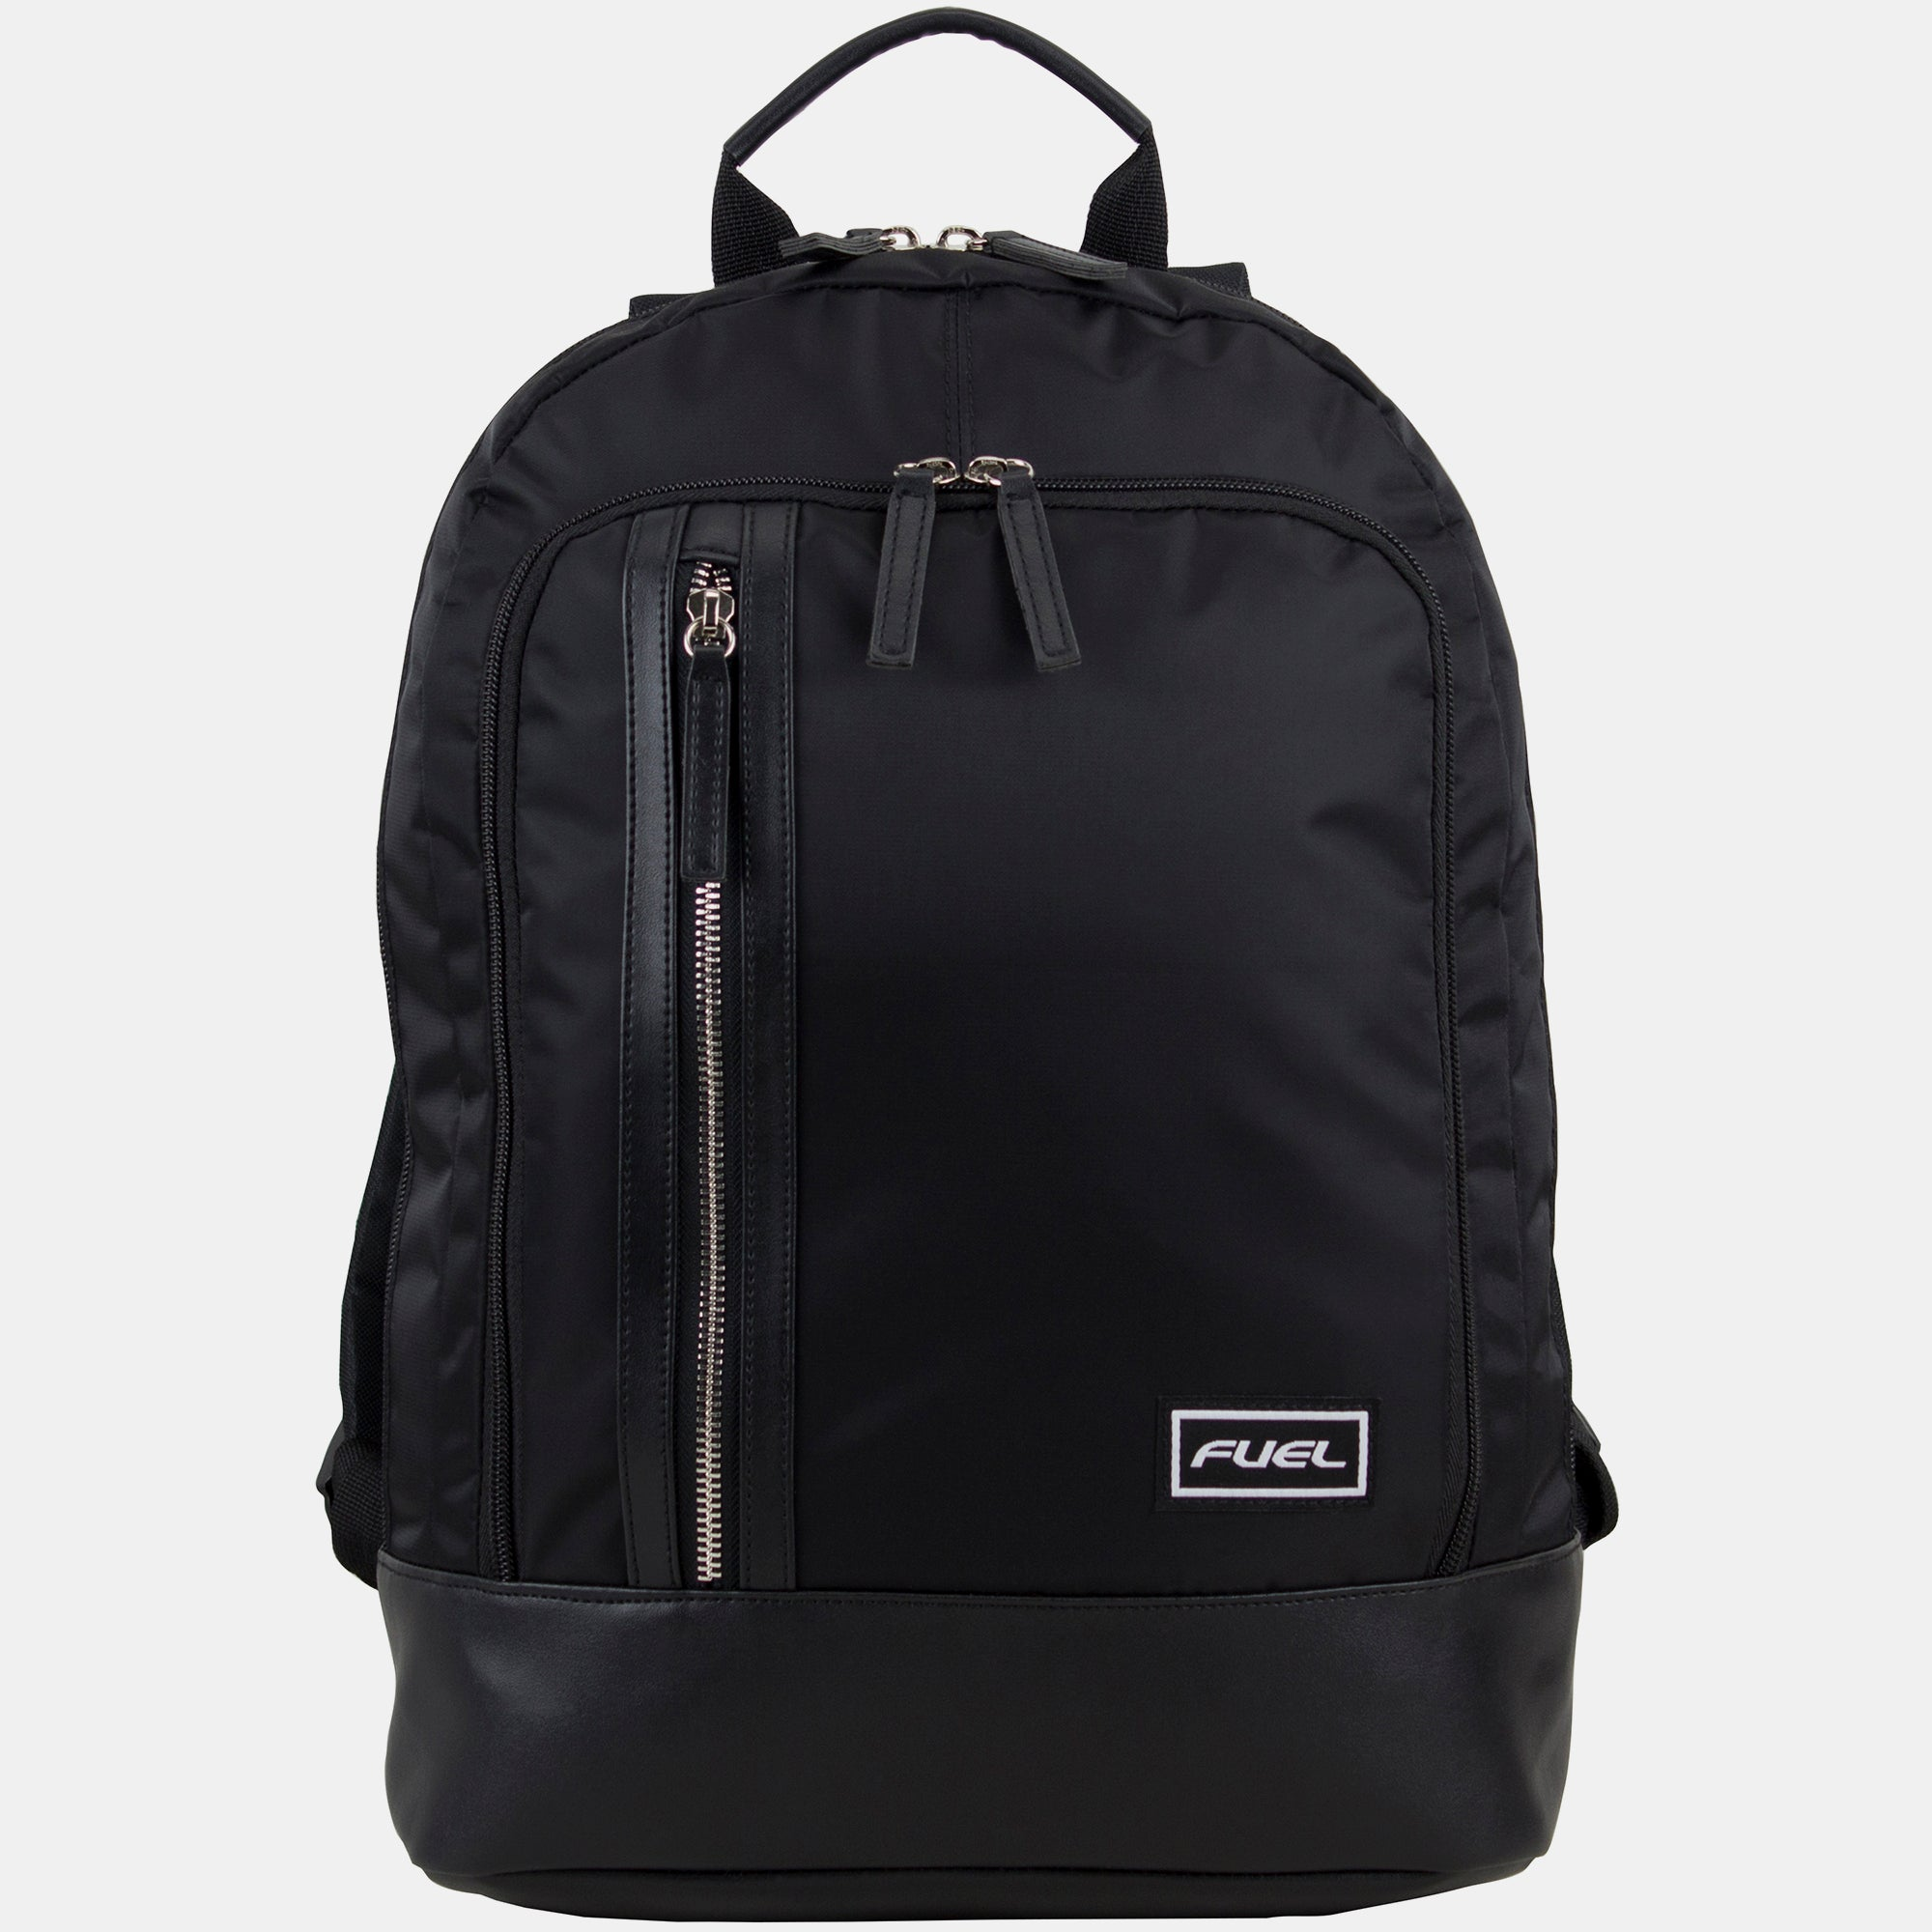 Fuel Millennial Slim Backpack with Trolley Sleeve